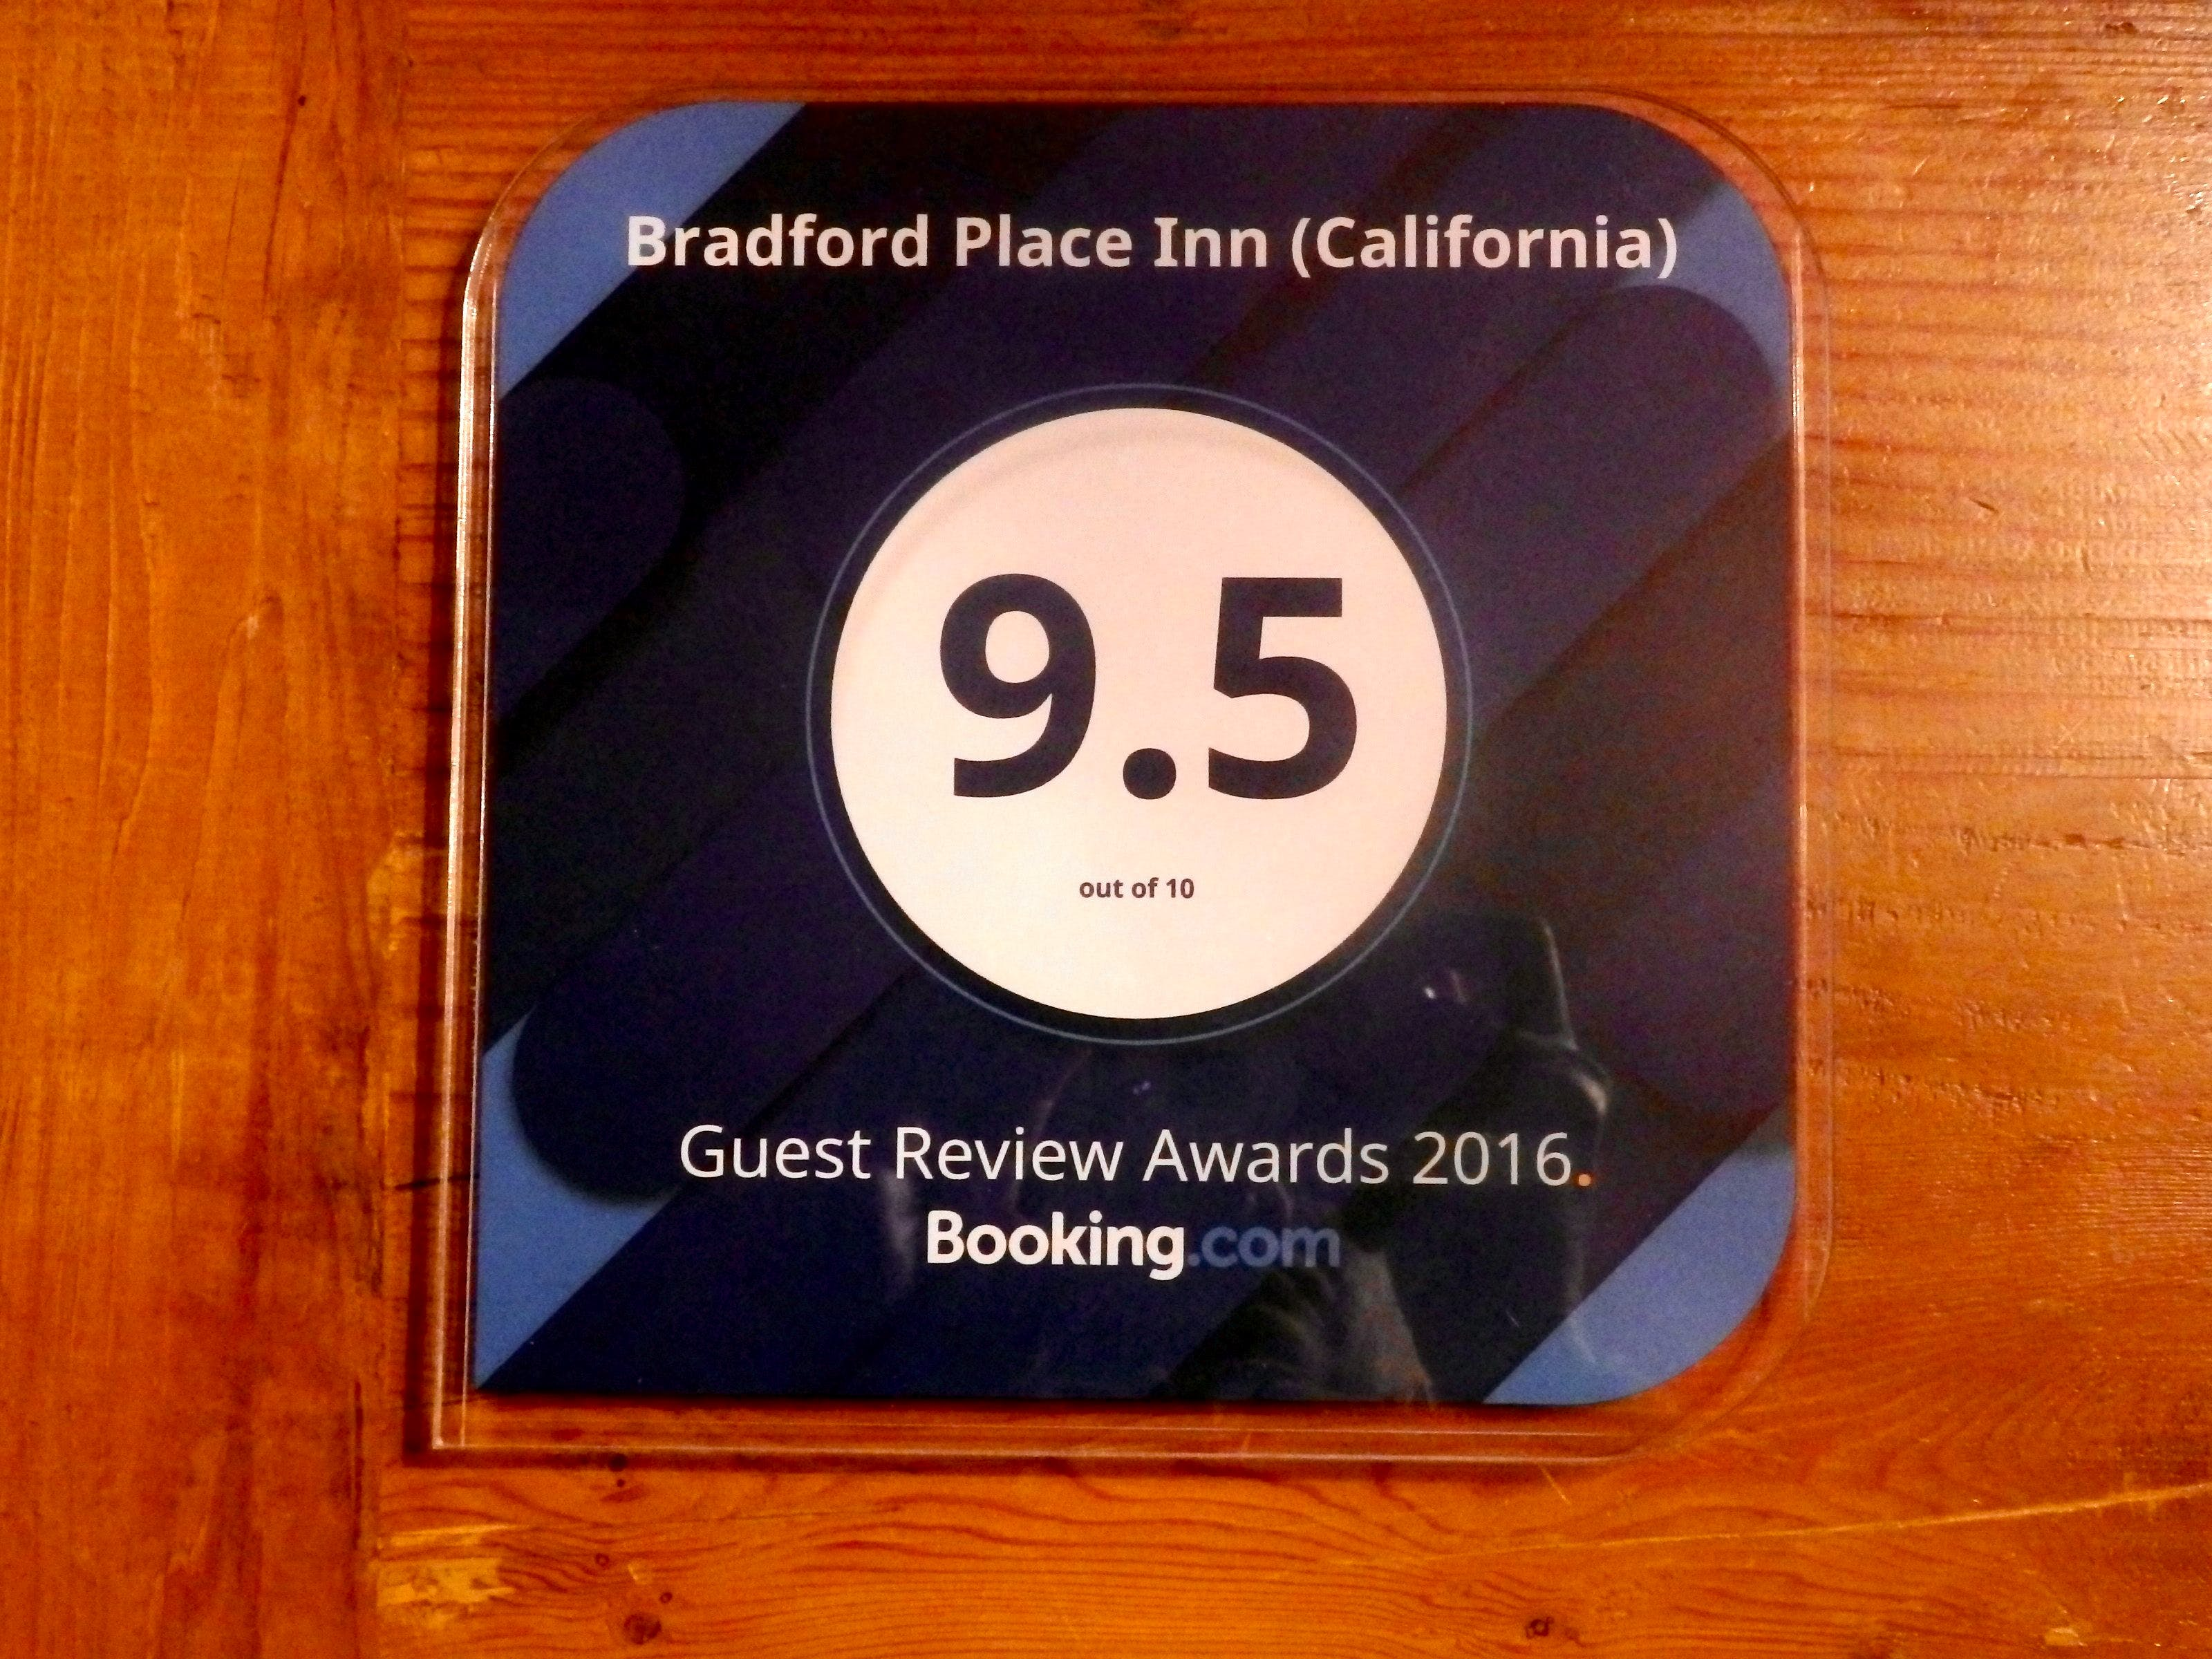 Booking.com 2016 Review Award